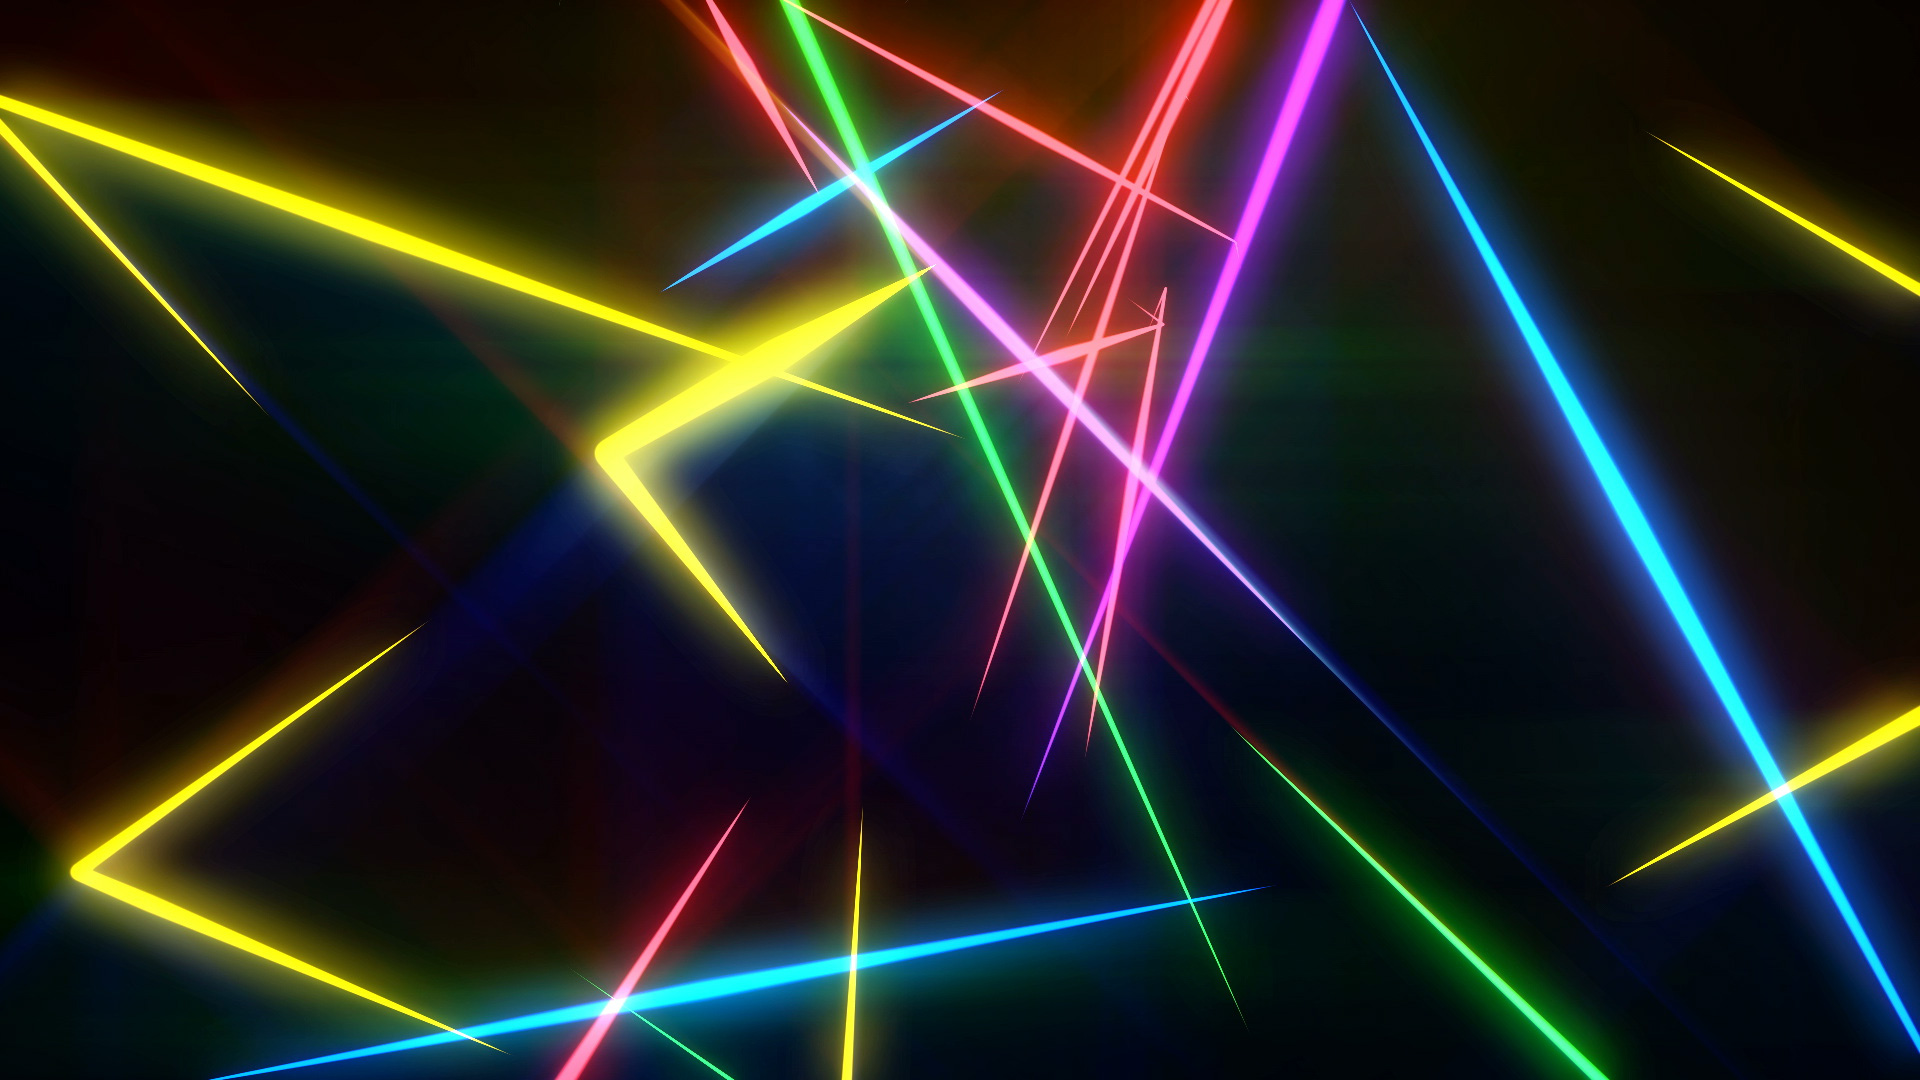 Neon Lasers And Lights Vj Pack Gesh Tv